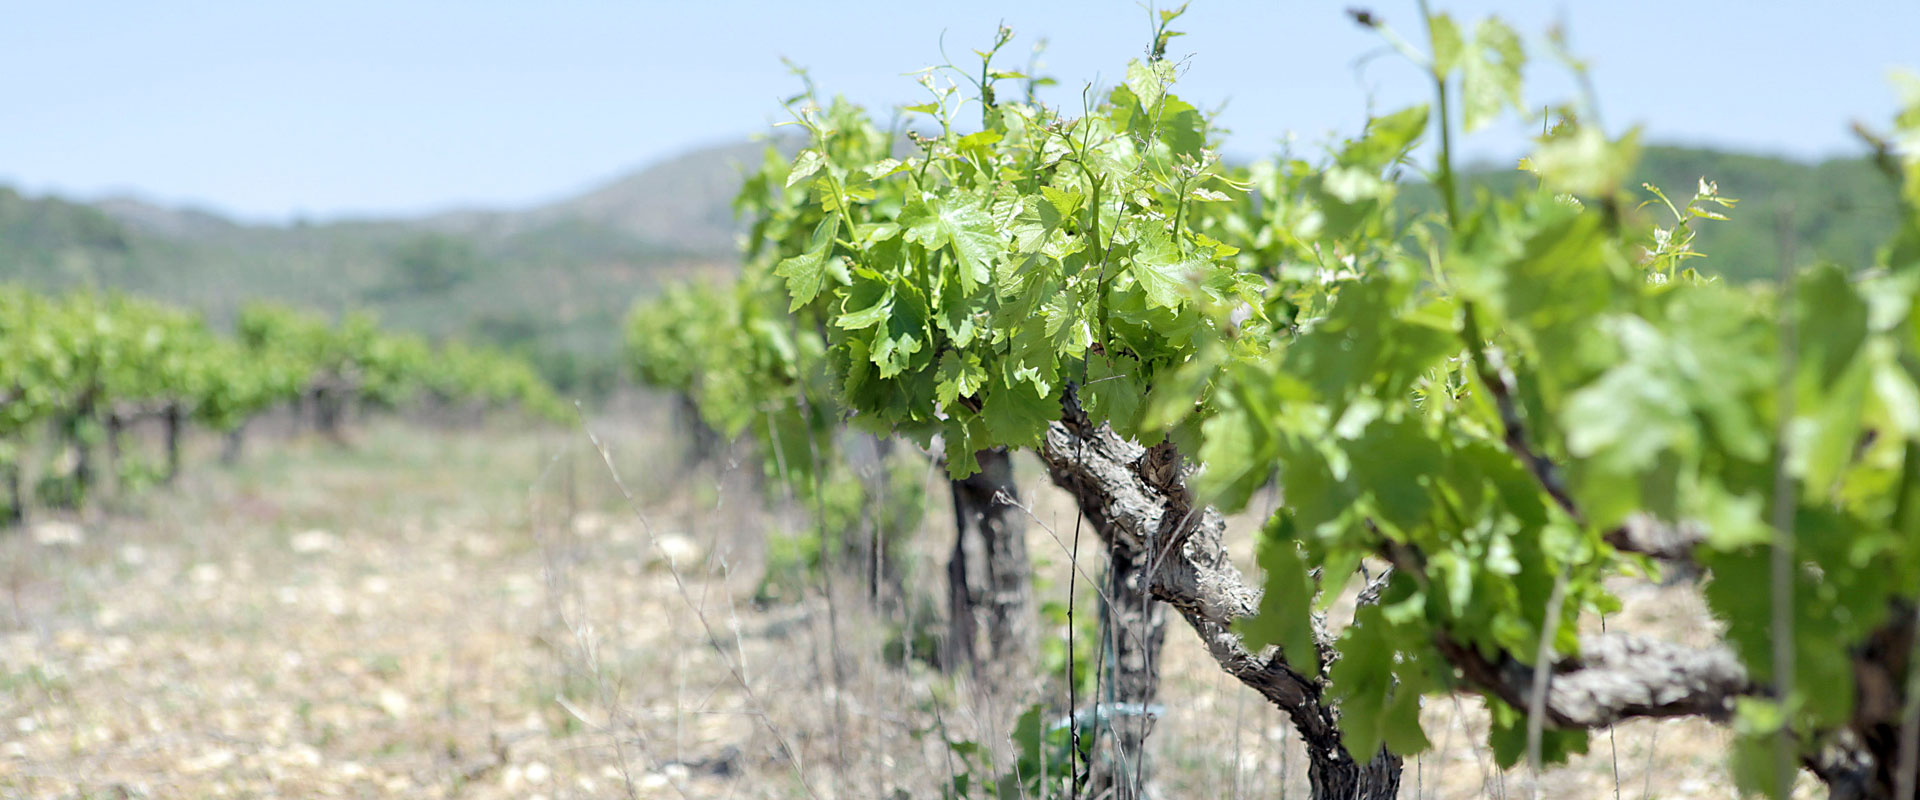 Nestor Winery - Our vineyards